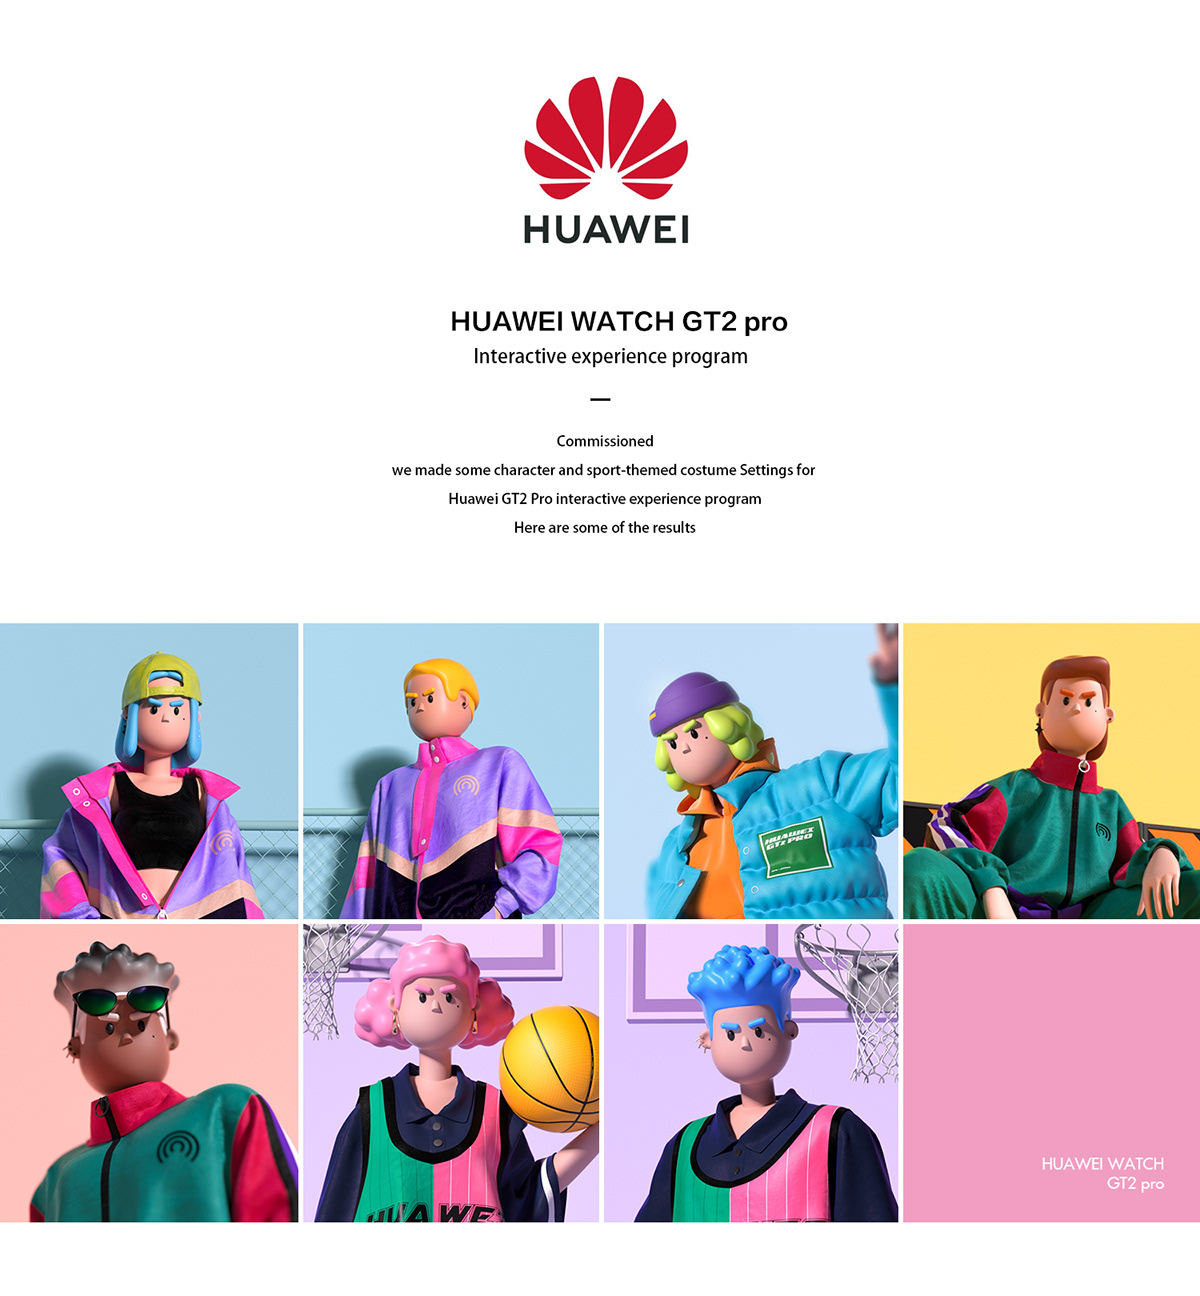 3D c4d Character design  clothing design huawei illustrations IP